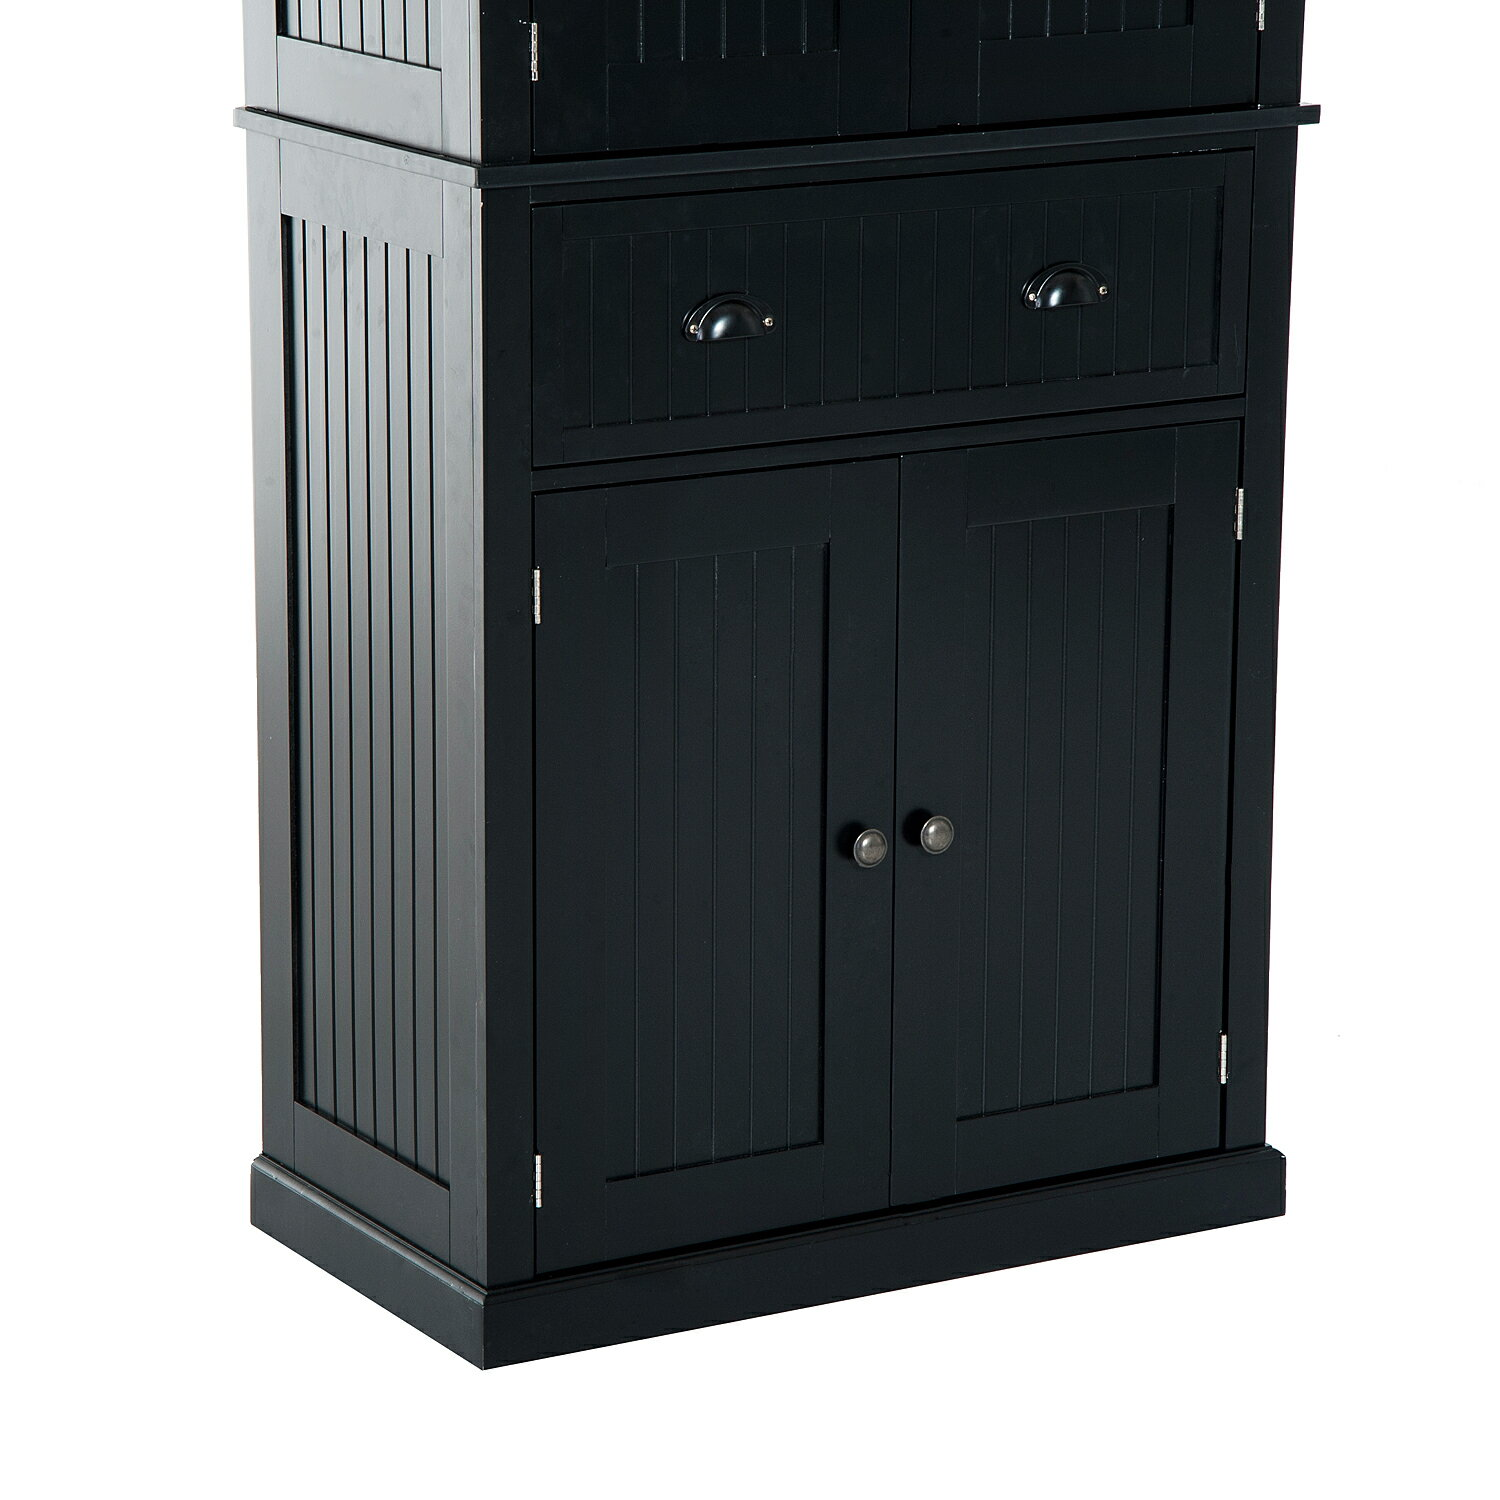 aosom homcom large free standing colonial wood storage cabinet kitchen pantry black. Black Bedroom Furniture Sets. Home Design Ideas